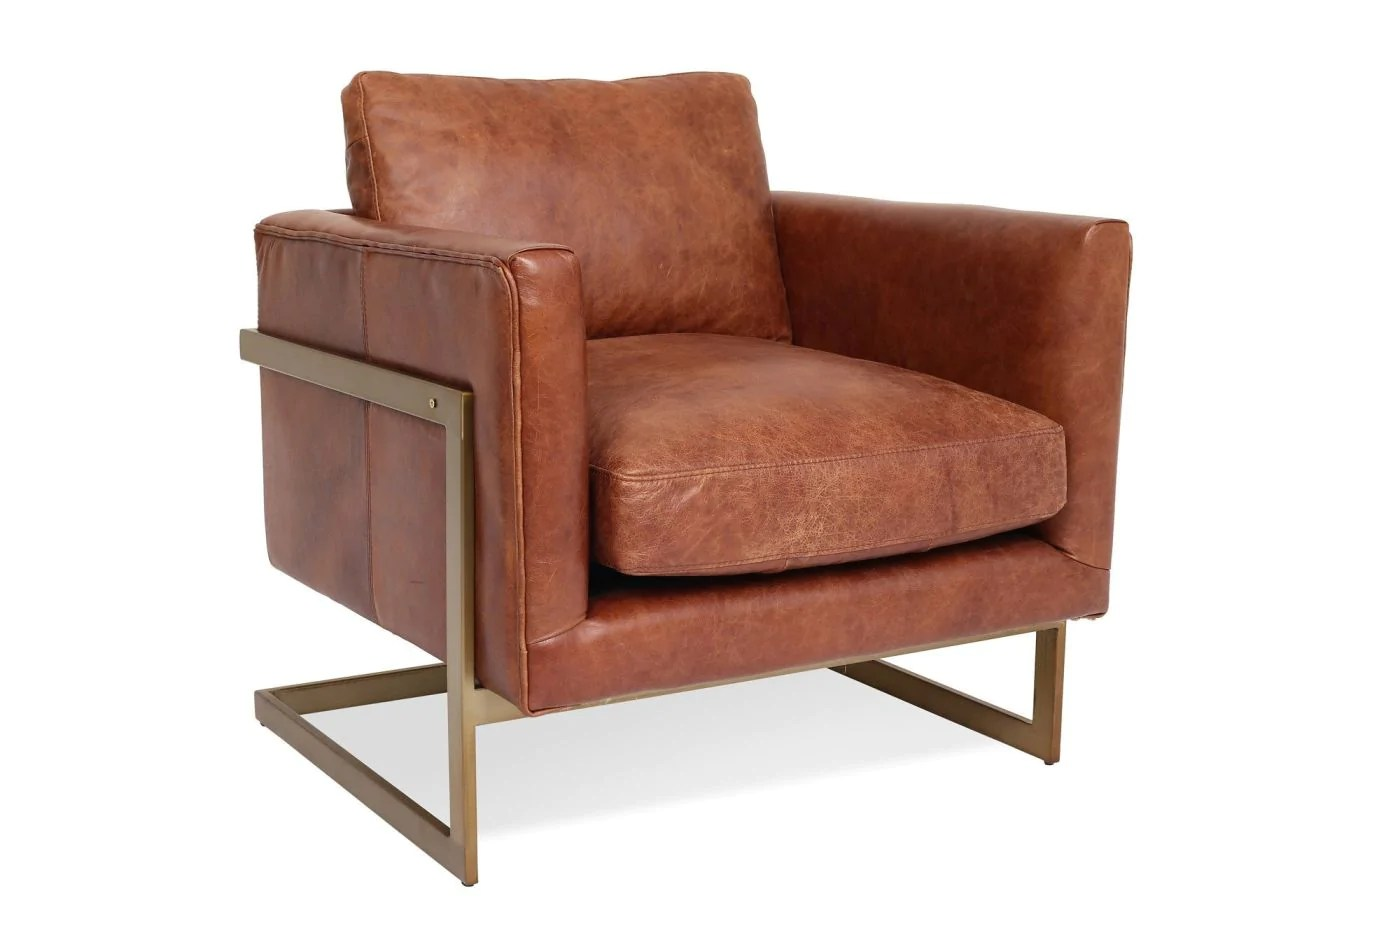 Leather Lounge Buy Edloe Finch Ef Z1 Lc004 London Leather Lounge Chair Cognac At Contemporary Furniture Warehouse